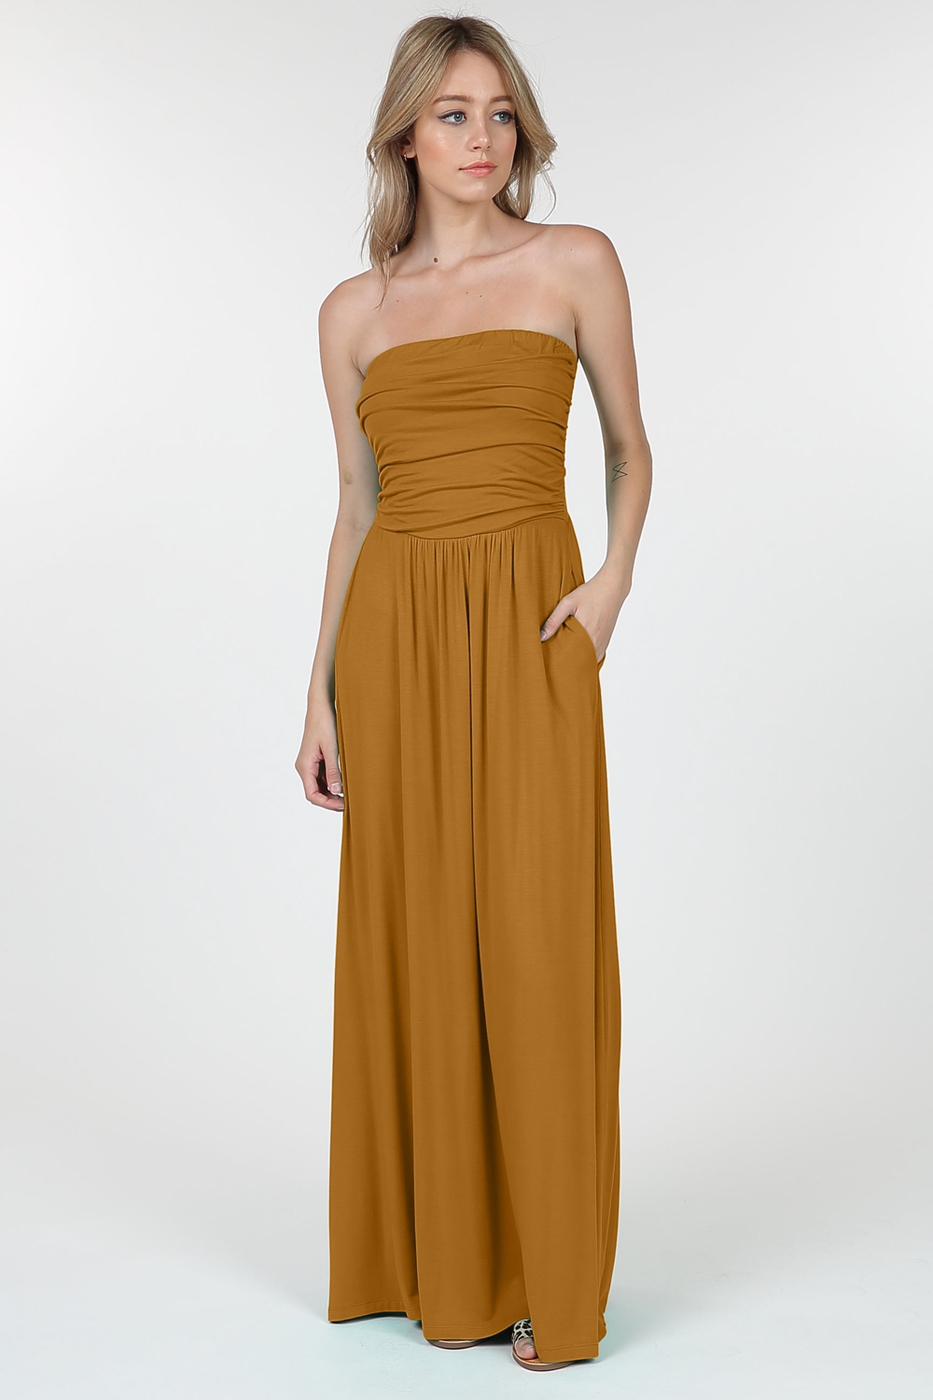 Strapless Tube Top Maxi Dress - orangeshine.com